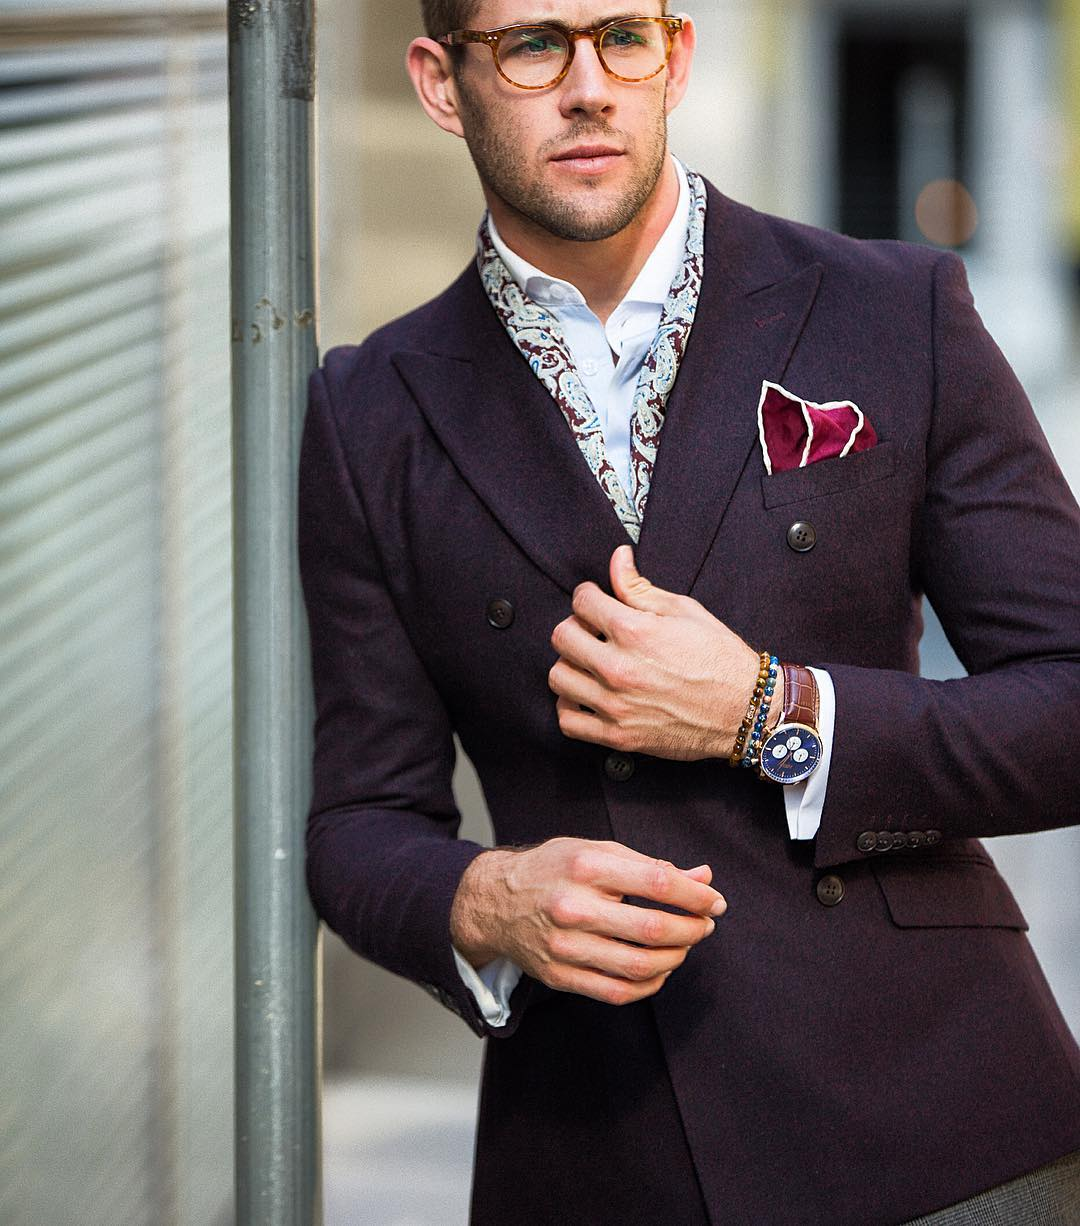 men wear suit with pocket square